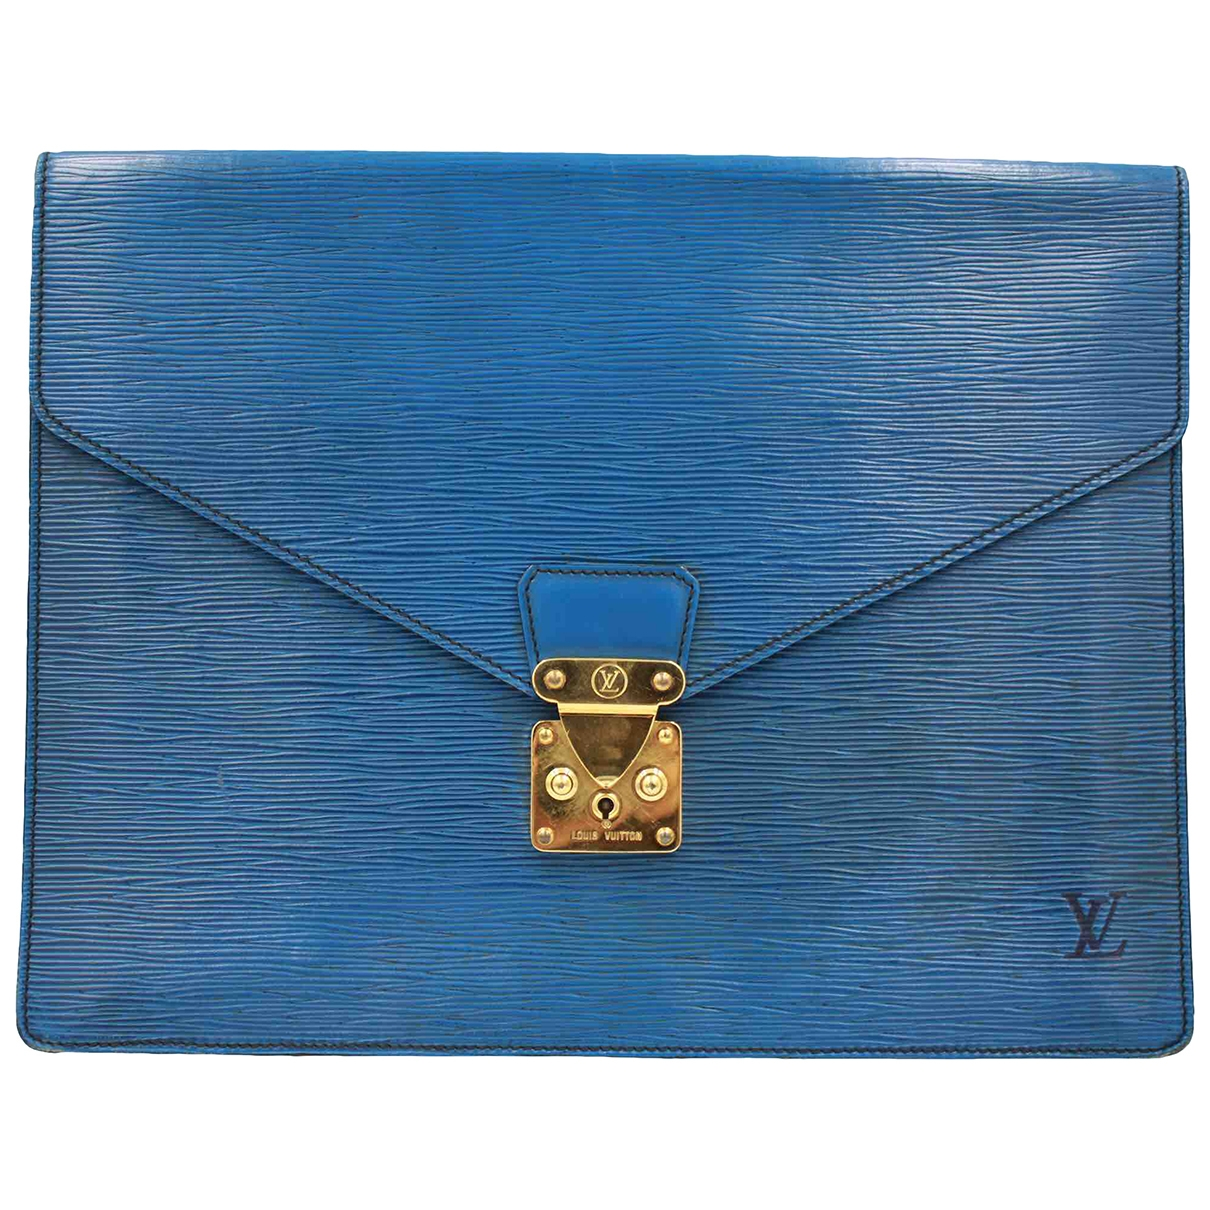 Louis Vuitton \N Kleinlederwaren in  Blau Leder